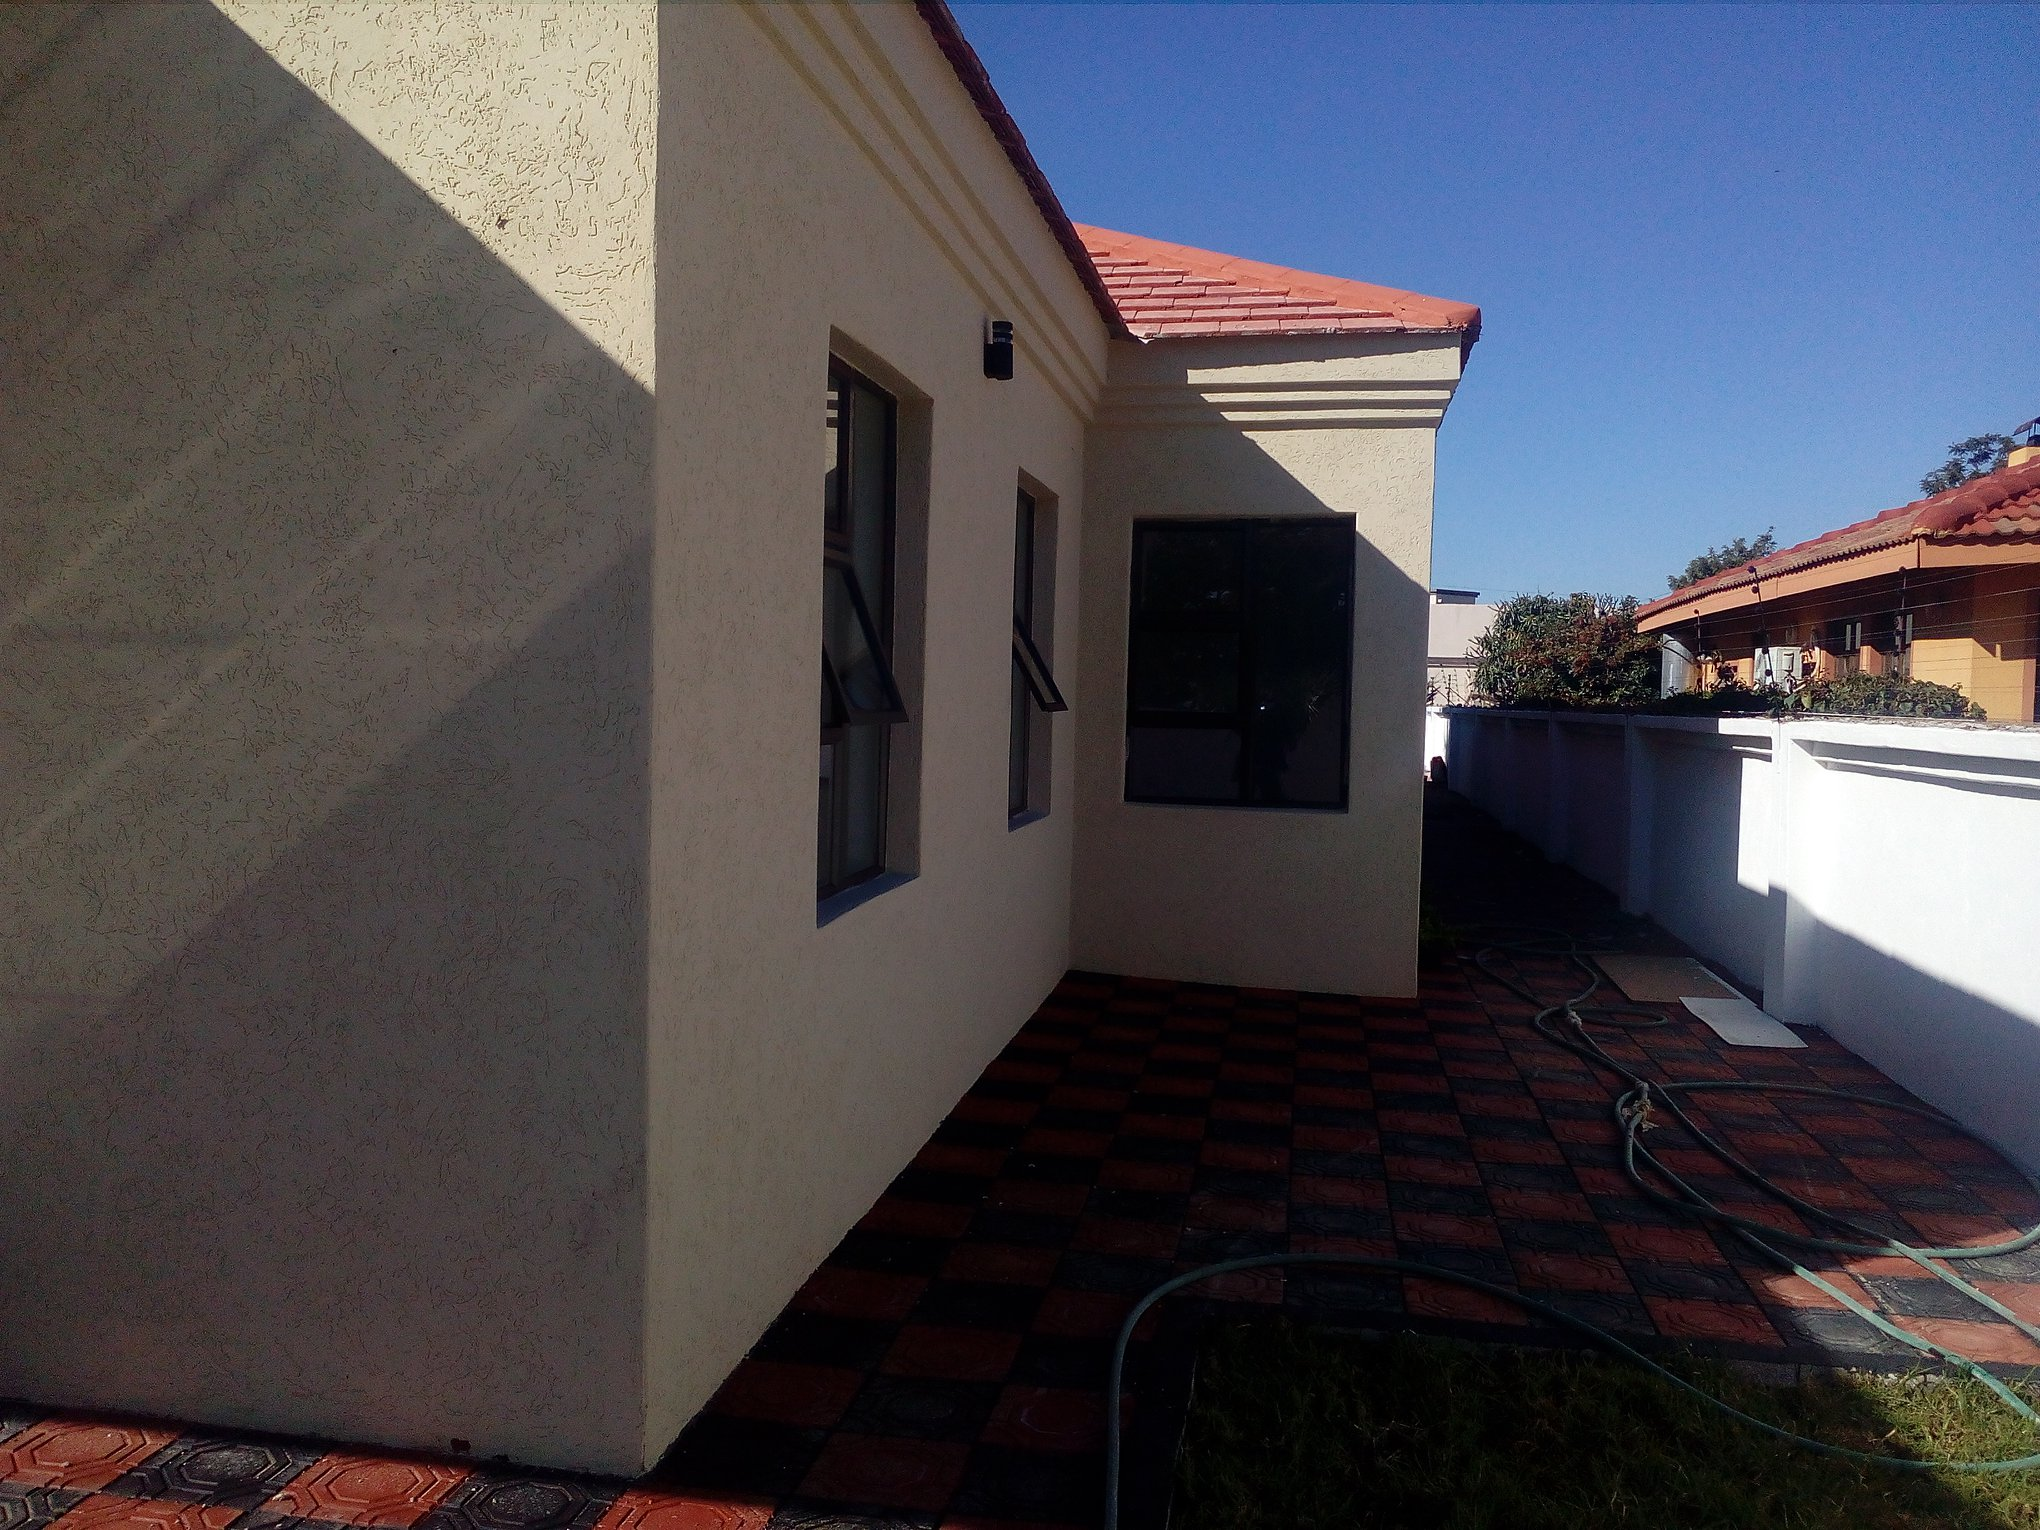 Phakalane Gaborone 4 Bedroom House For Sale Impact